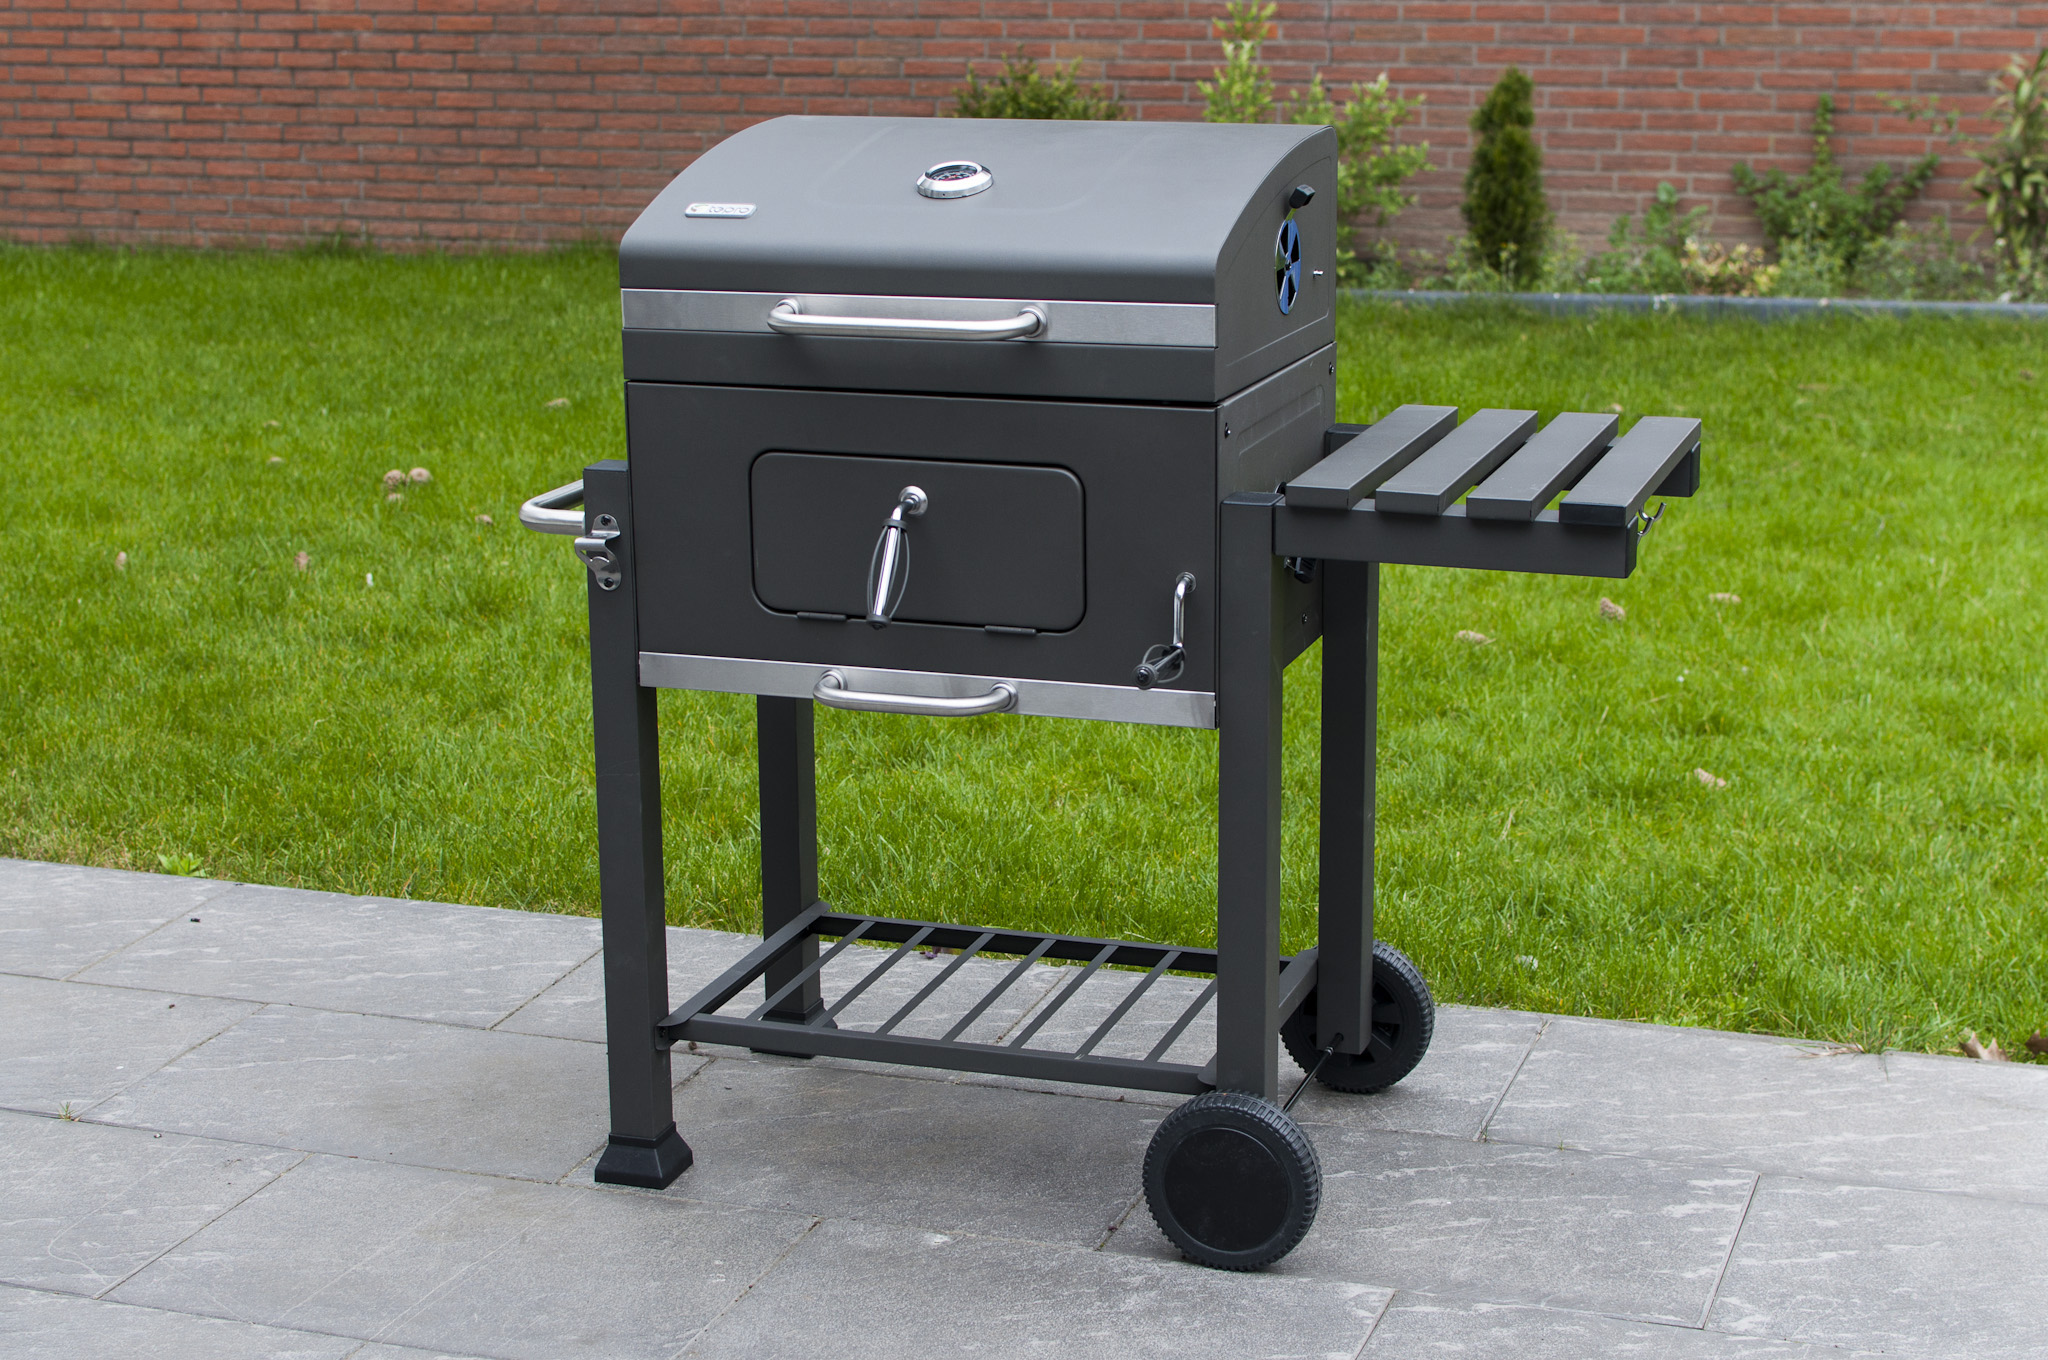 Tepro Toronto Holzkohlegrill Grill : Barbecue smoker tepro toronto einbrennen holzkohlegriller